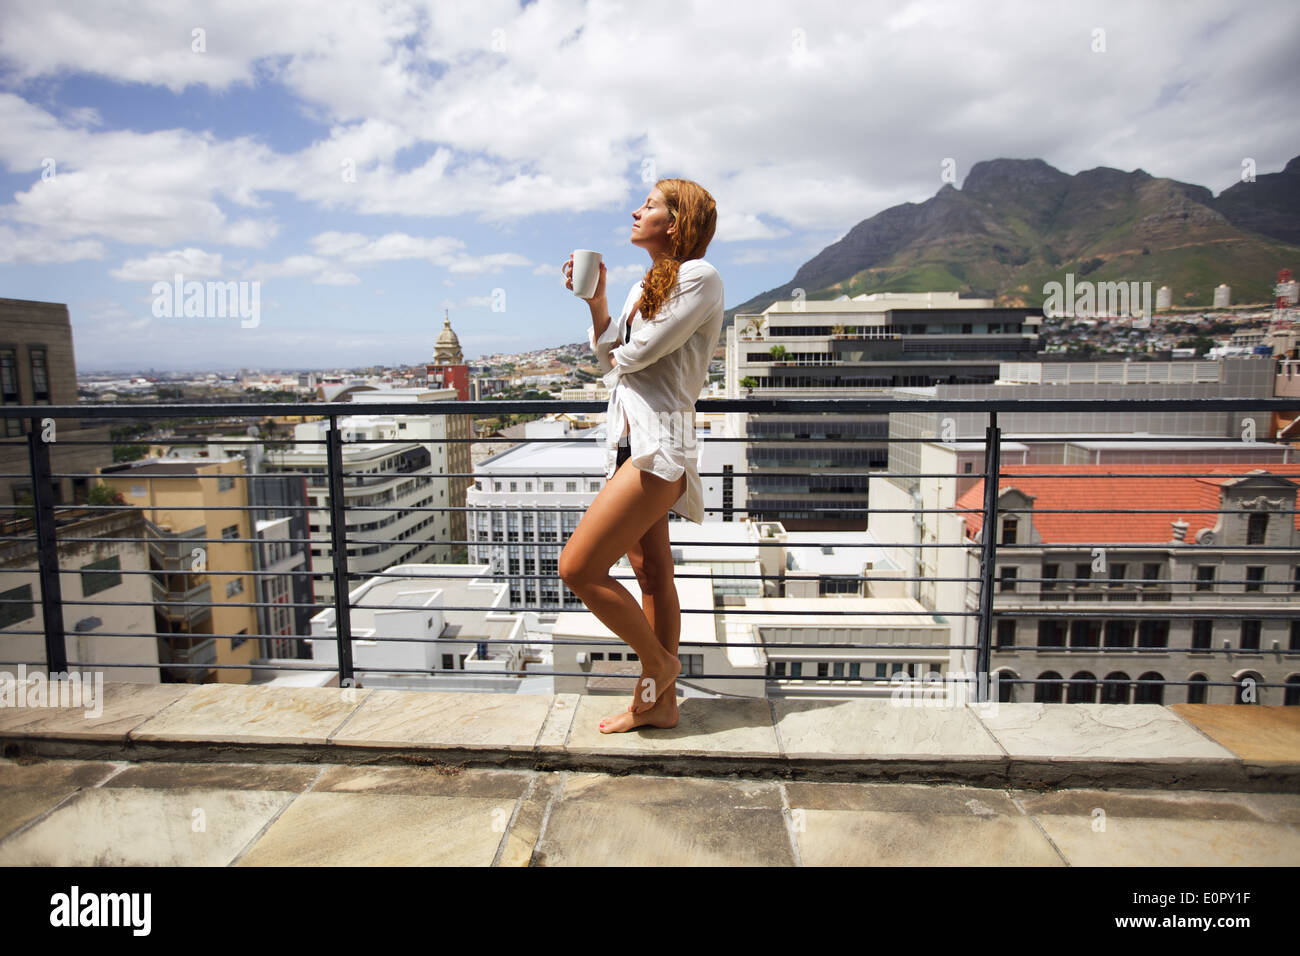 Beautiful young woman wearing a shirt only standing on balcony having cup of coffee, enjoying sun on a hot summer day. - Stock Image